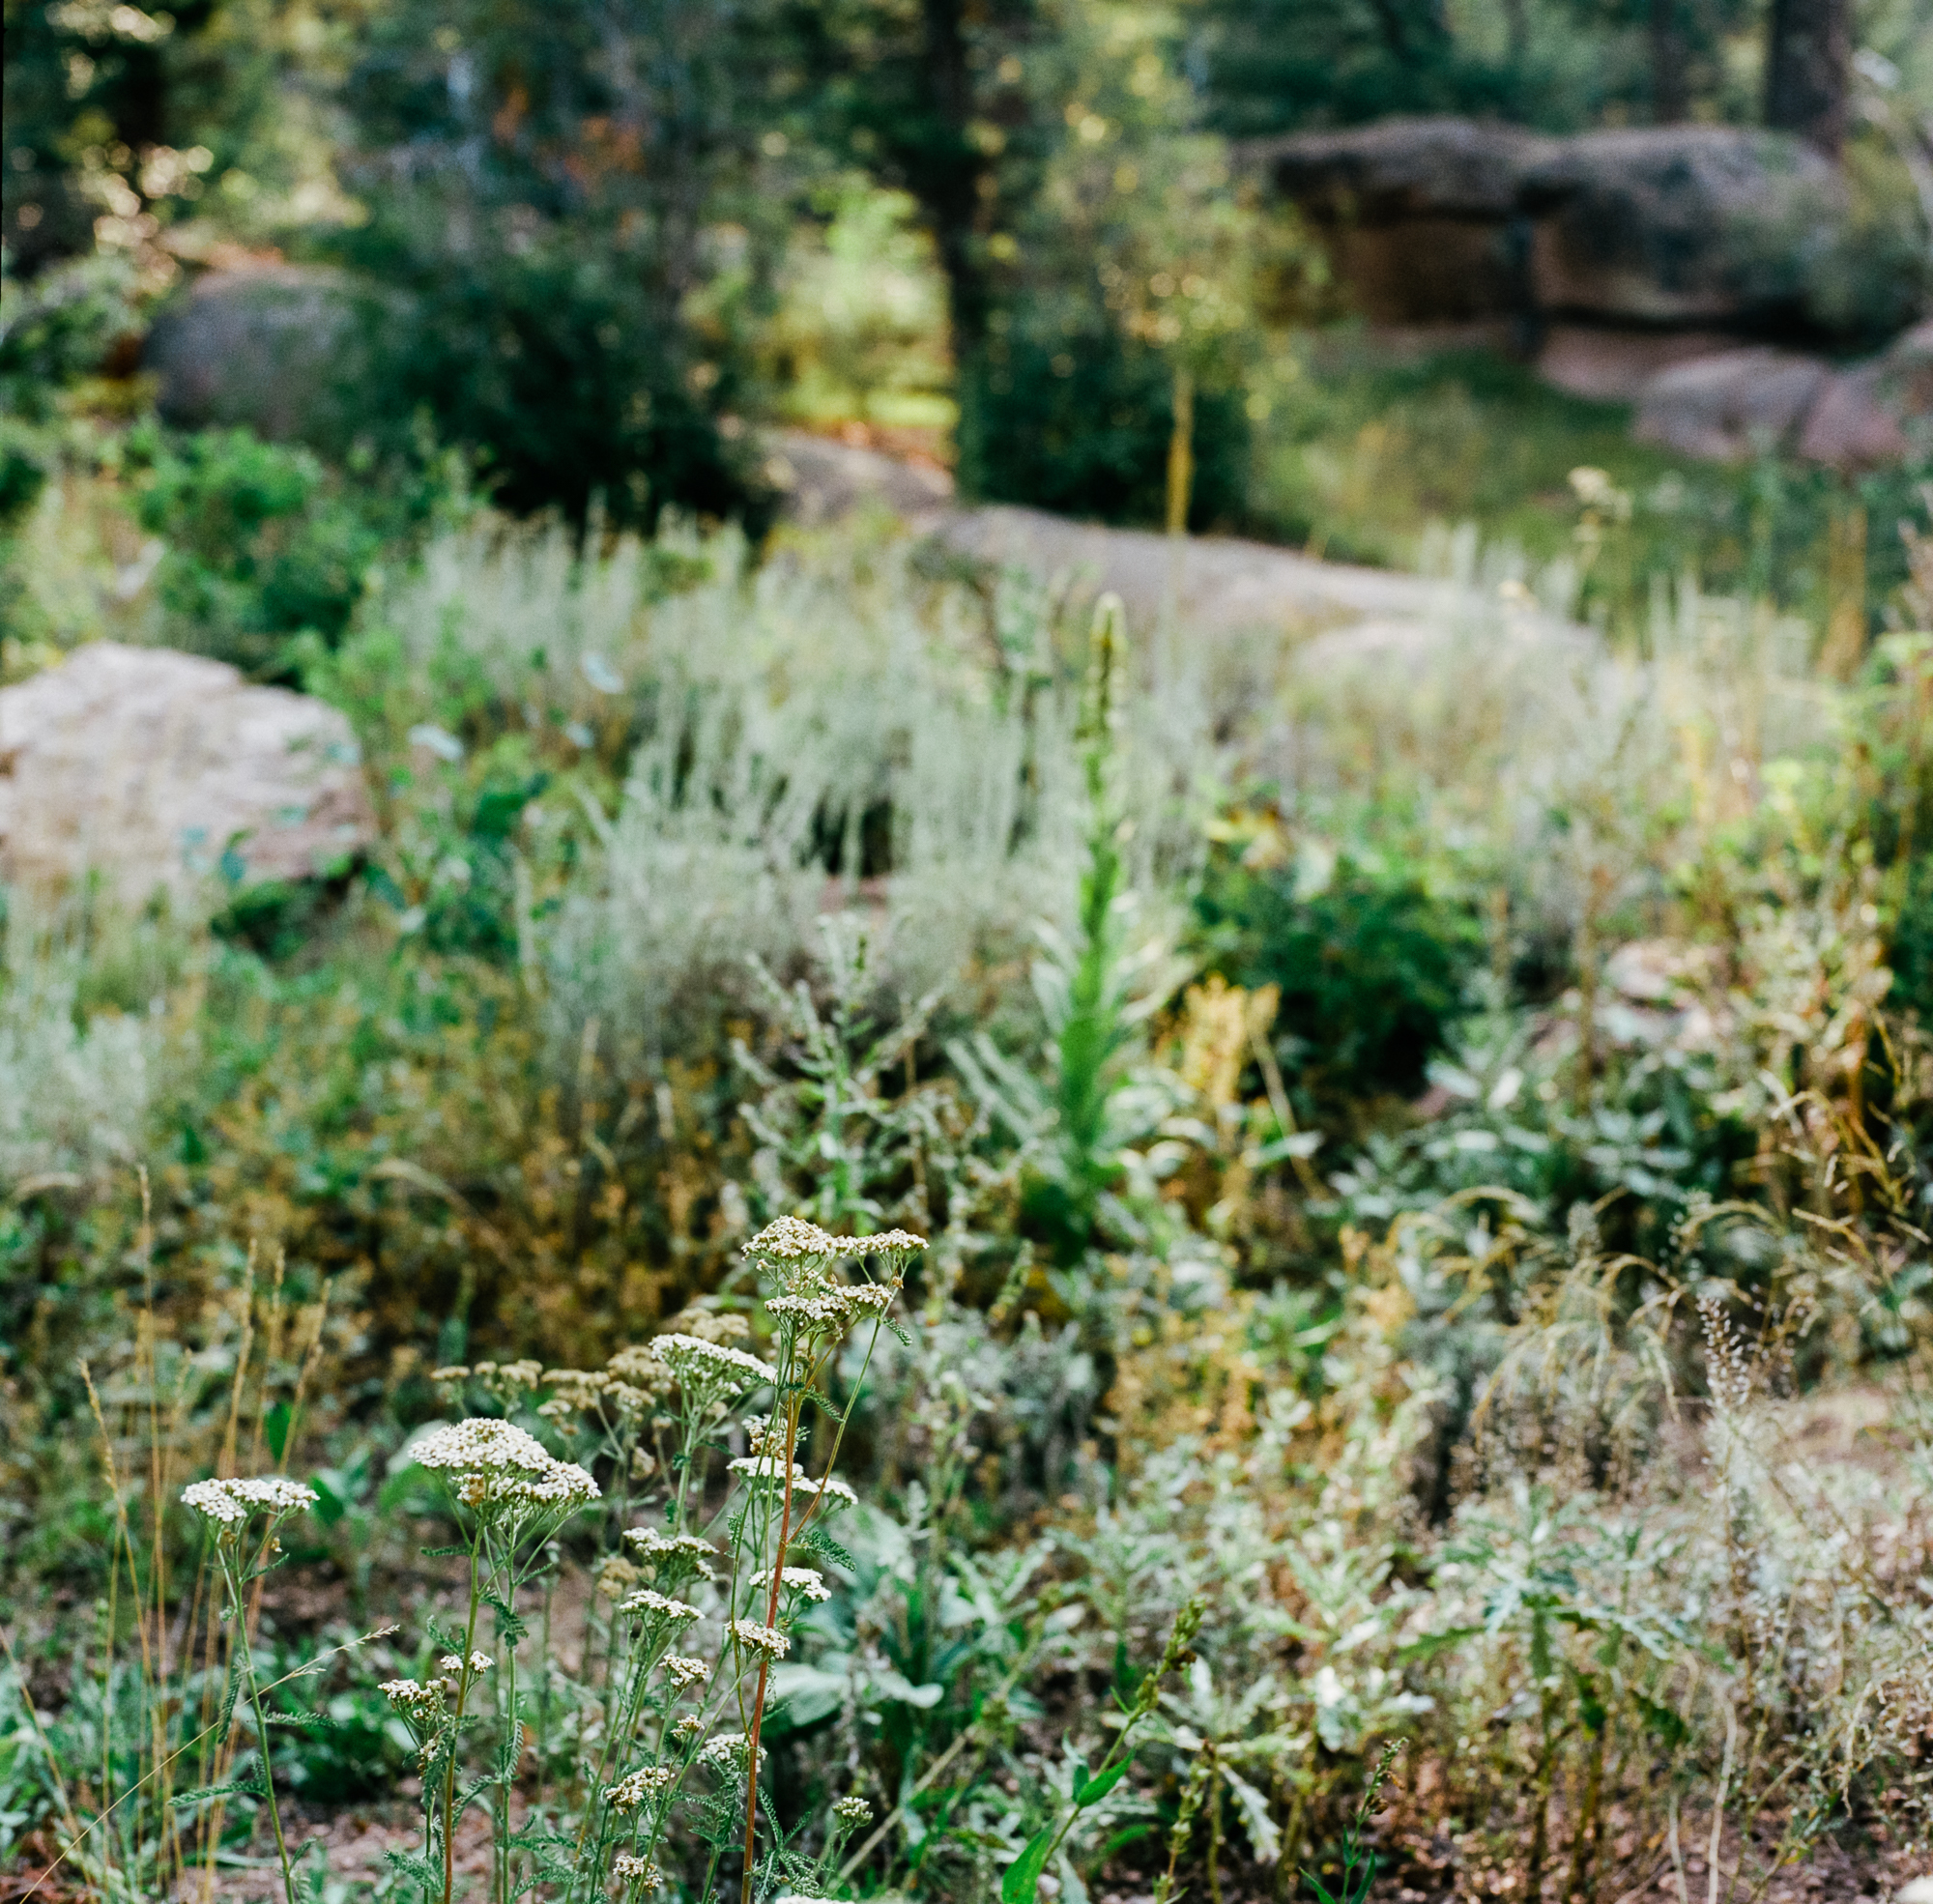 wyoming nature photographers film hasselblad shots ©2018abigailbobophotography-6.jpg